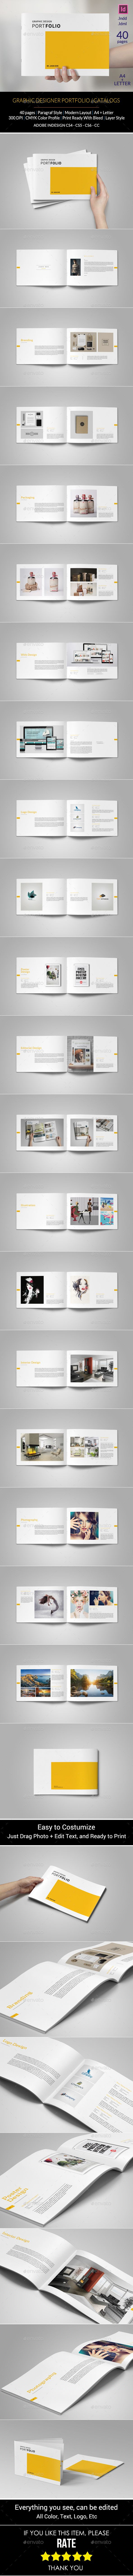 Portfolio Template - Portfolio Brochure InDesign INDD. Download here: http://graphicriver.net/item/portfolio-template/13031098?s_rank=1797&ref=yinkira